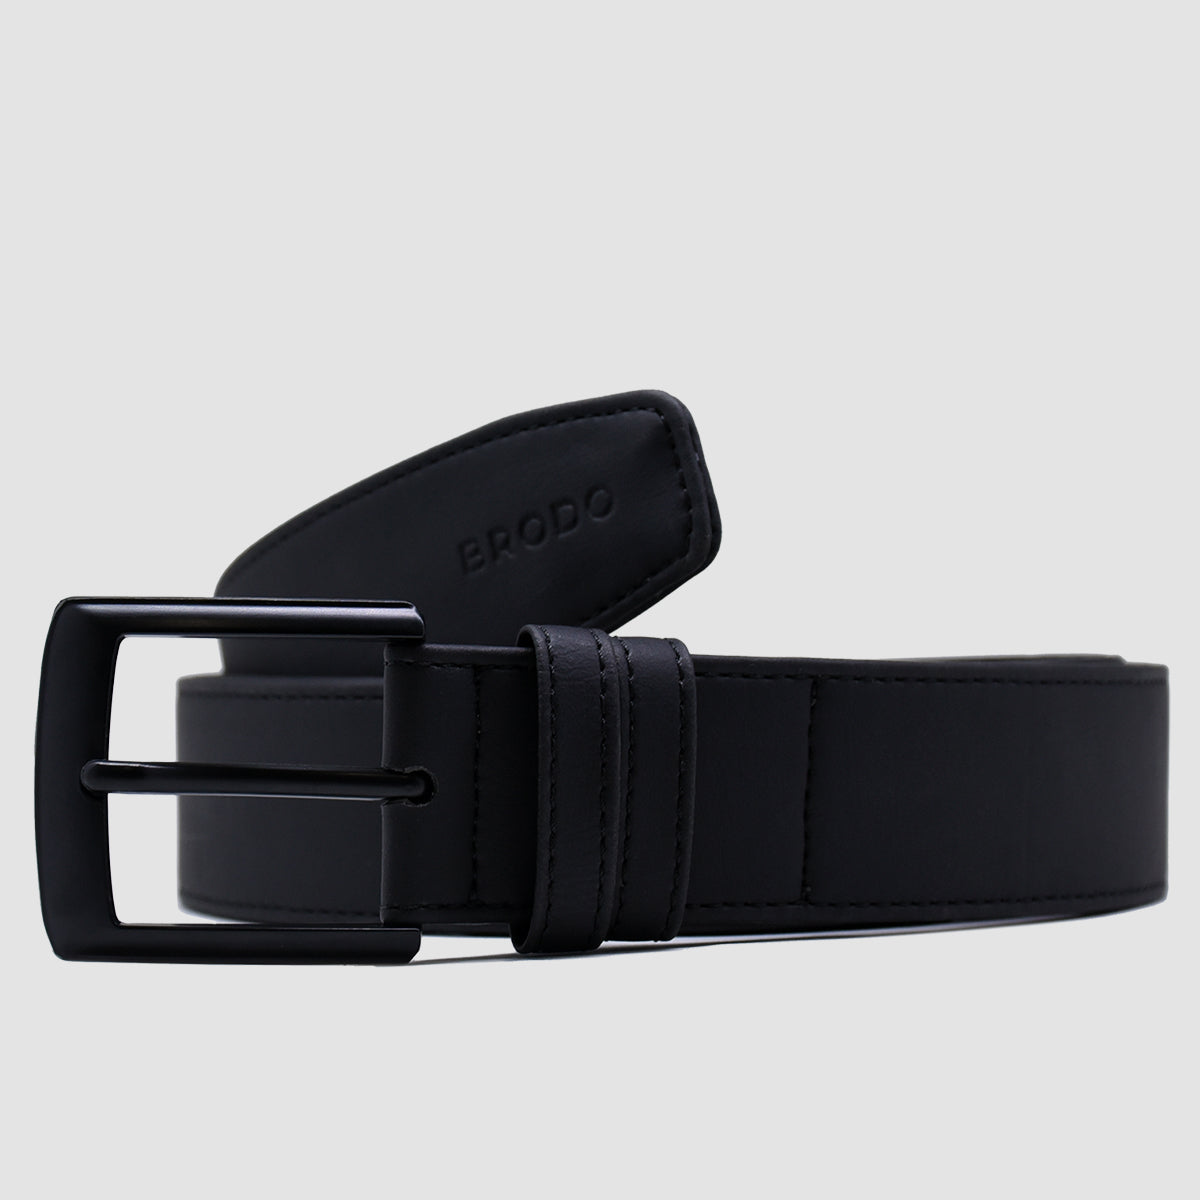 Lockbelt Black